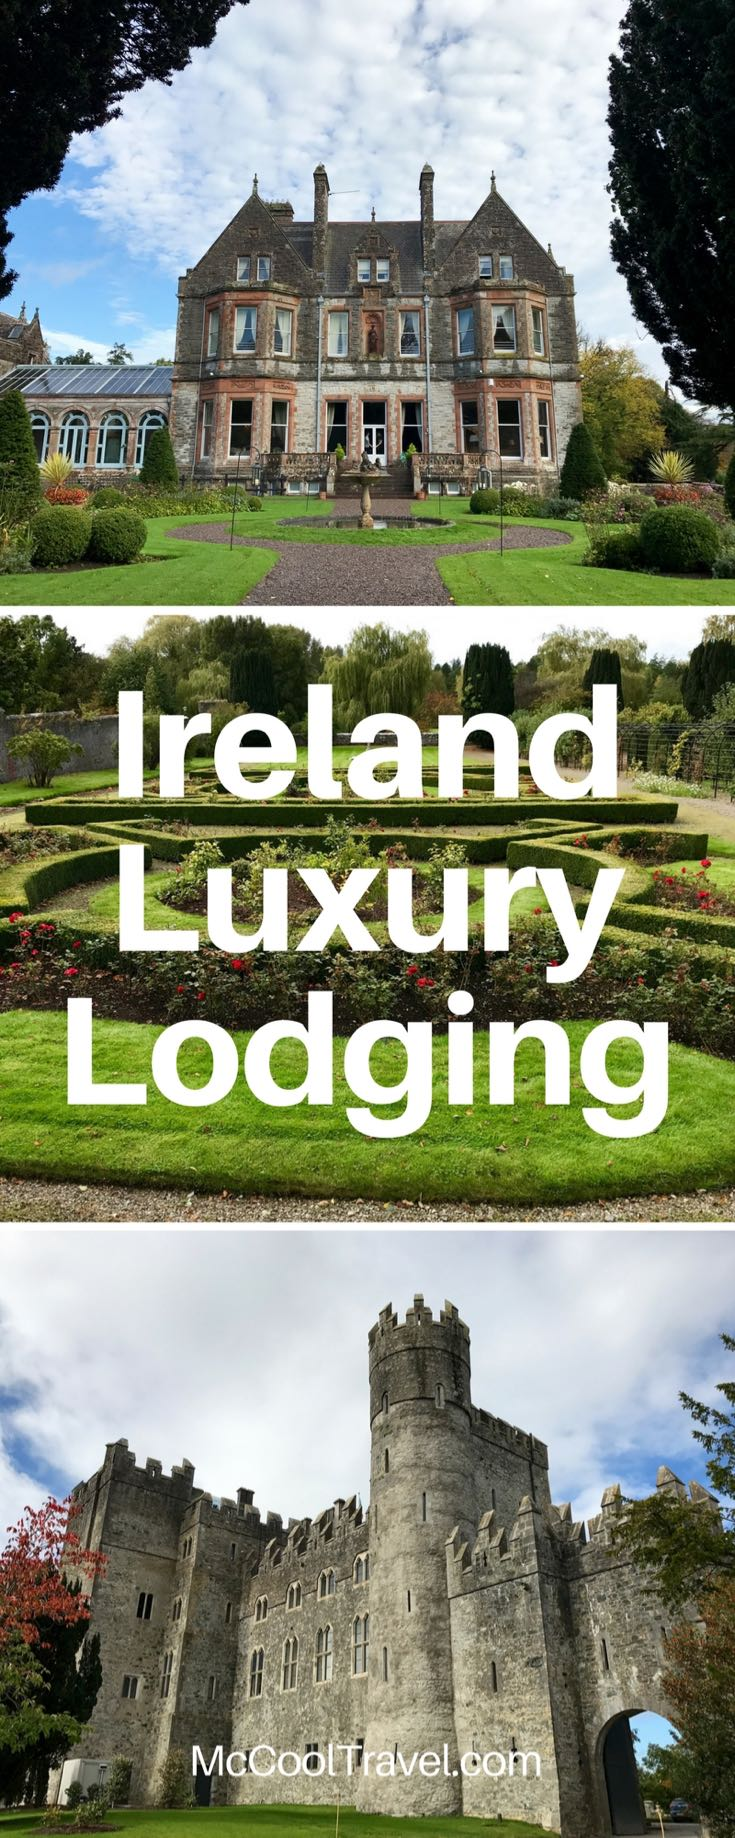 Ireland luxury lodging. Photo and article by Charles McCool for McCool Travel.